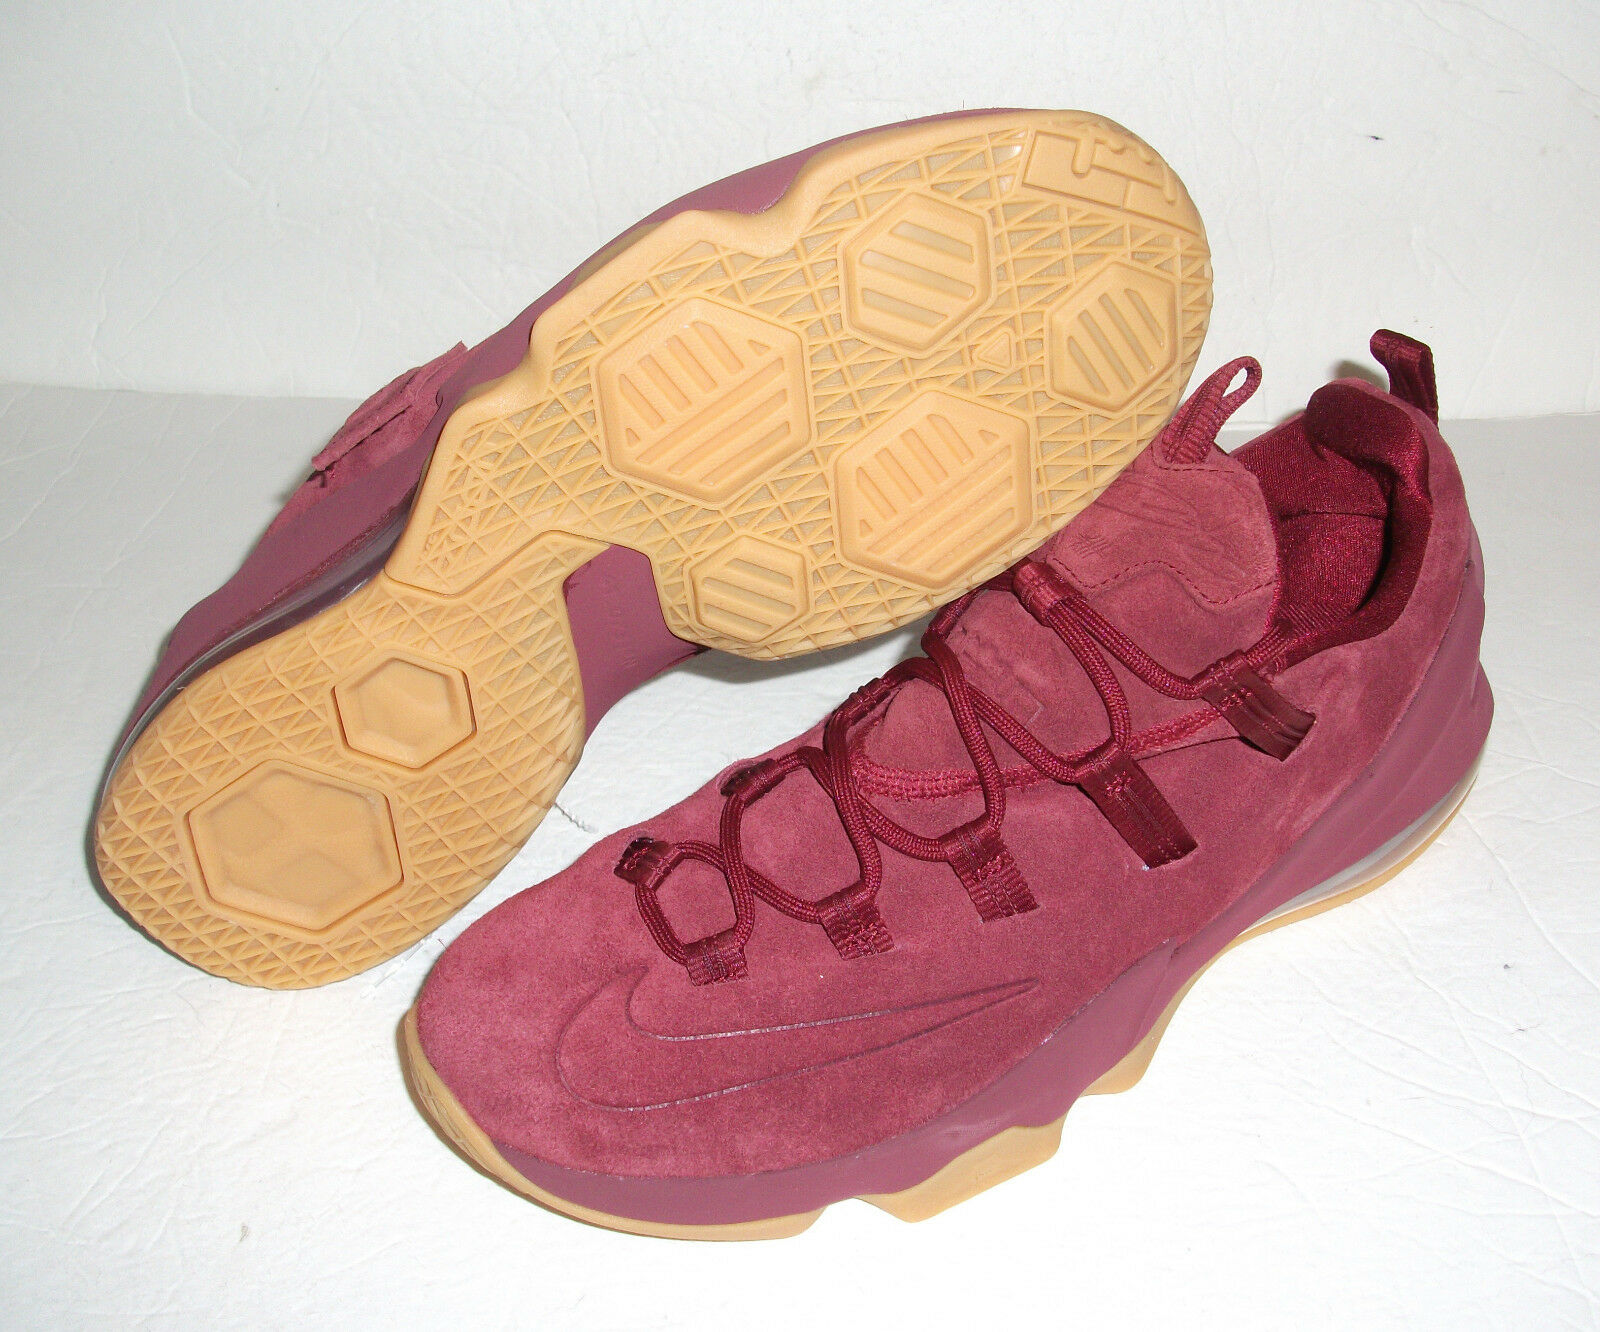 new product 52459 7a14c New Nike LeBron XIII XIII XIII Low Premium, Men s Size 11, Suede Burgundy Gum,  AH8289 600 495a7f